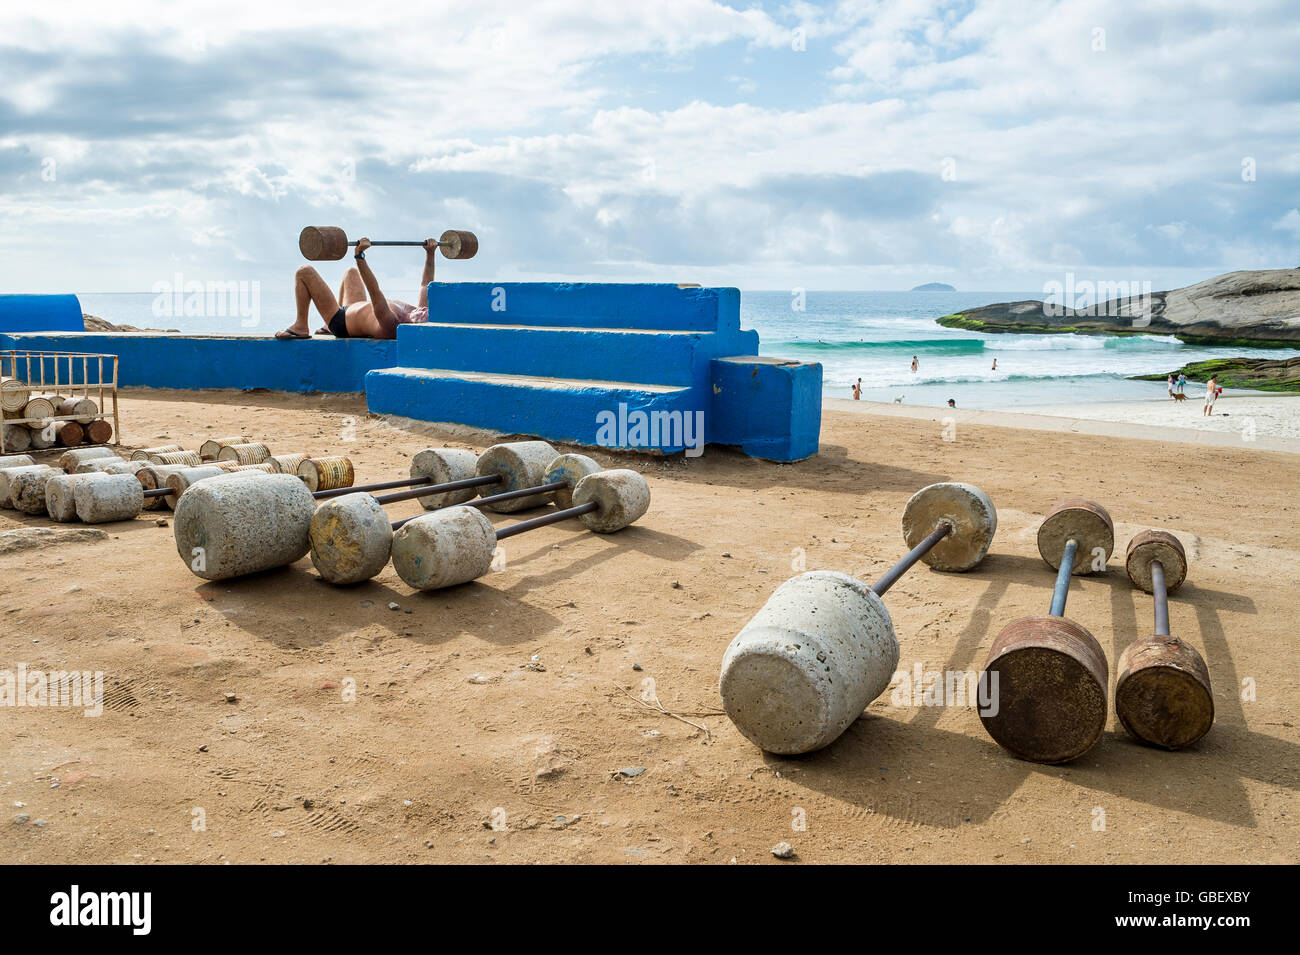 RIO DE JANEIRO - FEBRUARY 12, 2015: Brazilian man exercises at the outdoor workout station at Arpoador. - Stock Image